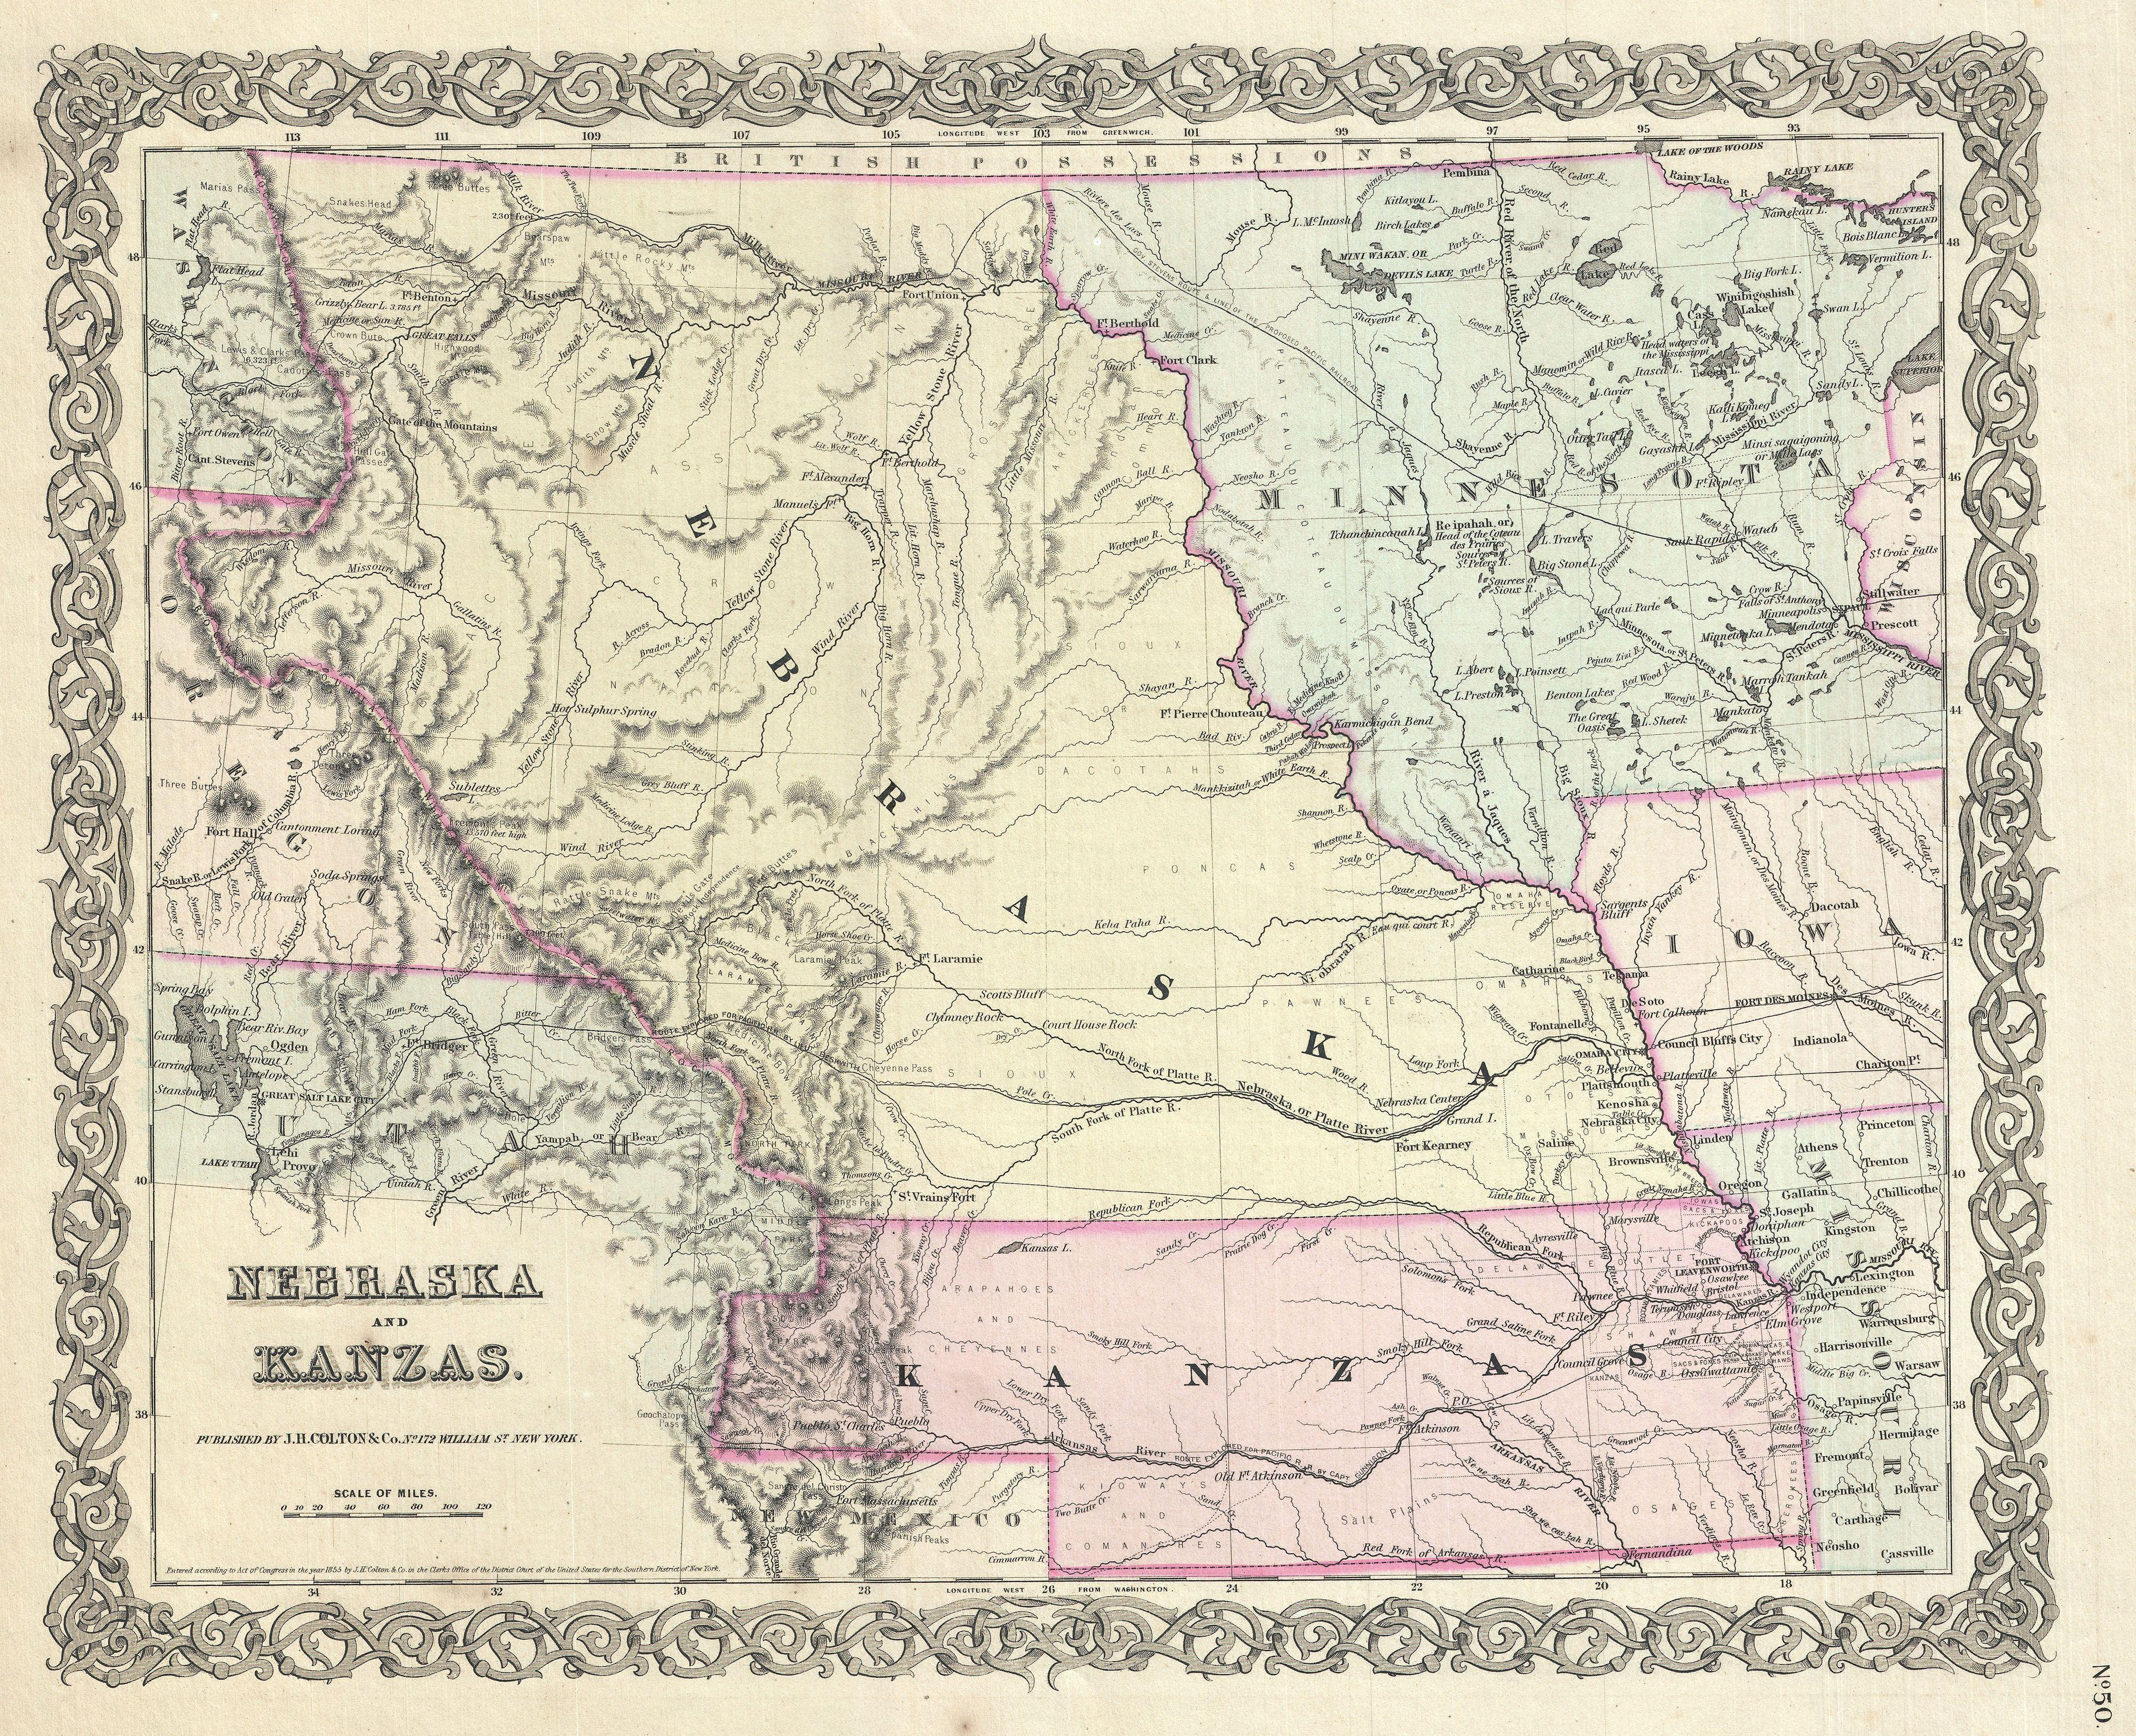 Colton's map of Nebraska and Kansas, 1855 (first edition), based on an earlier wall map produced by Colton and D. Griffing Johnson. The map details the regions between the Great Salt Lake and Iowa and between the Canadian Border and New Mexico and covers territorial Kansas and Nebraska as well as parts of adjacent Minnesota, Iowa, Missouri and Utah. When this map was printed Nebraska and Kansas had only recently been opened for settlement. Both regions were sparsely inhabited by the diverse yet powerful Indian nations of Comanches, Kioways, Arapahoes, Cheyennes, Sioux, Dacotahs, Poncas, Pawnee's, Omahas, Missouris, Delawares, Shawnee, Osages, Crow, Black, and others - whose territorial claims Colton notes. Colton also notes three of the routes proposed for the Pacific Railroad, the Stevens route far to the north, the Beswith route running through the center of the map, and the Gunnison Route passing through Kansas. This map further identifies various forts, rivers, mountain passes, fords, and an assortment of additional topographical detail. Map is hand colored in pink, green, yellow and blue pastels to define territory and state boundaries. Surrounded by Colton's typical spiral motif border. Dated and copyrighted to J. H. Colton, 1855. Published from Colton's 172 William Street Office in New York City. Issued as page no. 50 in volume 1 of the first edition of George Washington Colton's 1855 Atlas of the World .